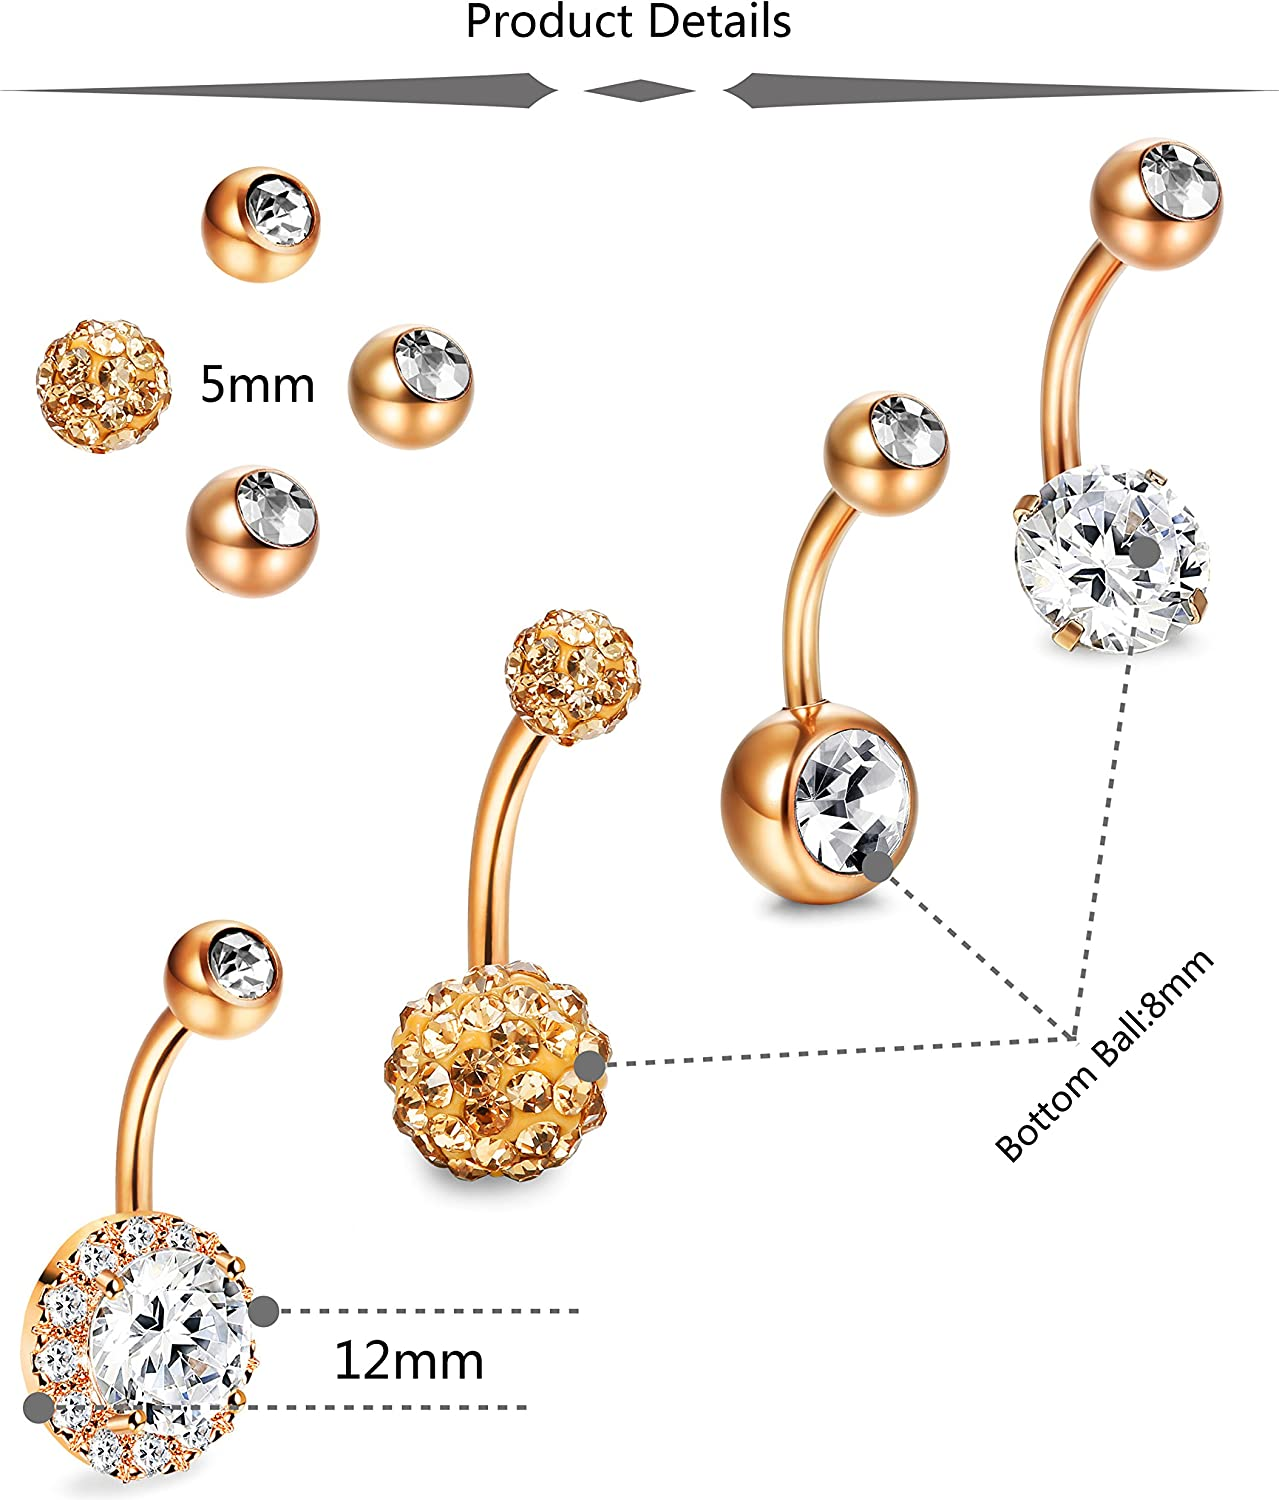 JOERICA 4PCS Stainless Steel Belly Button Rings Navel Body Jewelry Belly Piercing CZ Inlaid